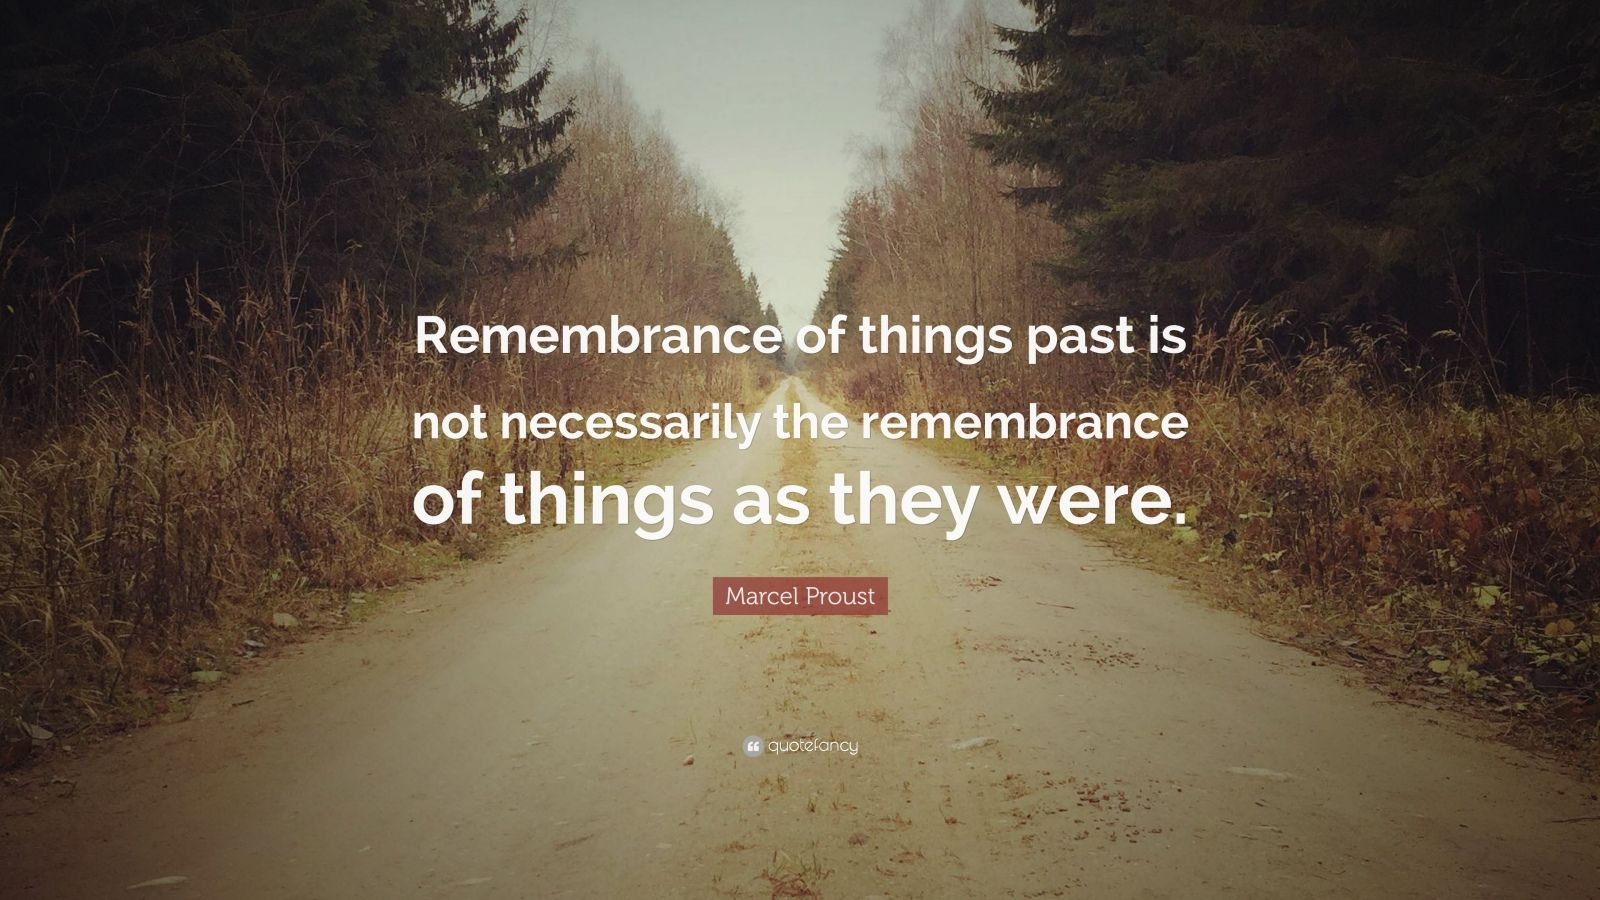 """Marcel Proust Quote: """"Remembrance of things past is not necessarily the remembrance of things as they were."""""""